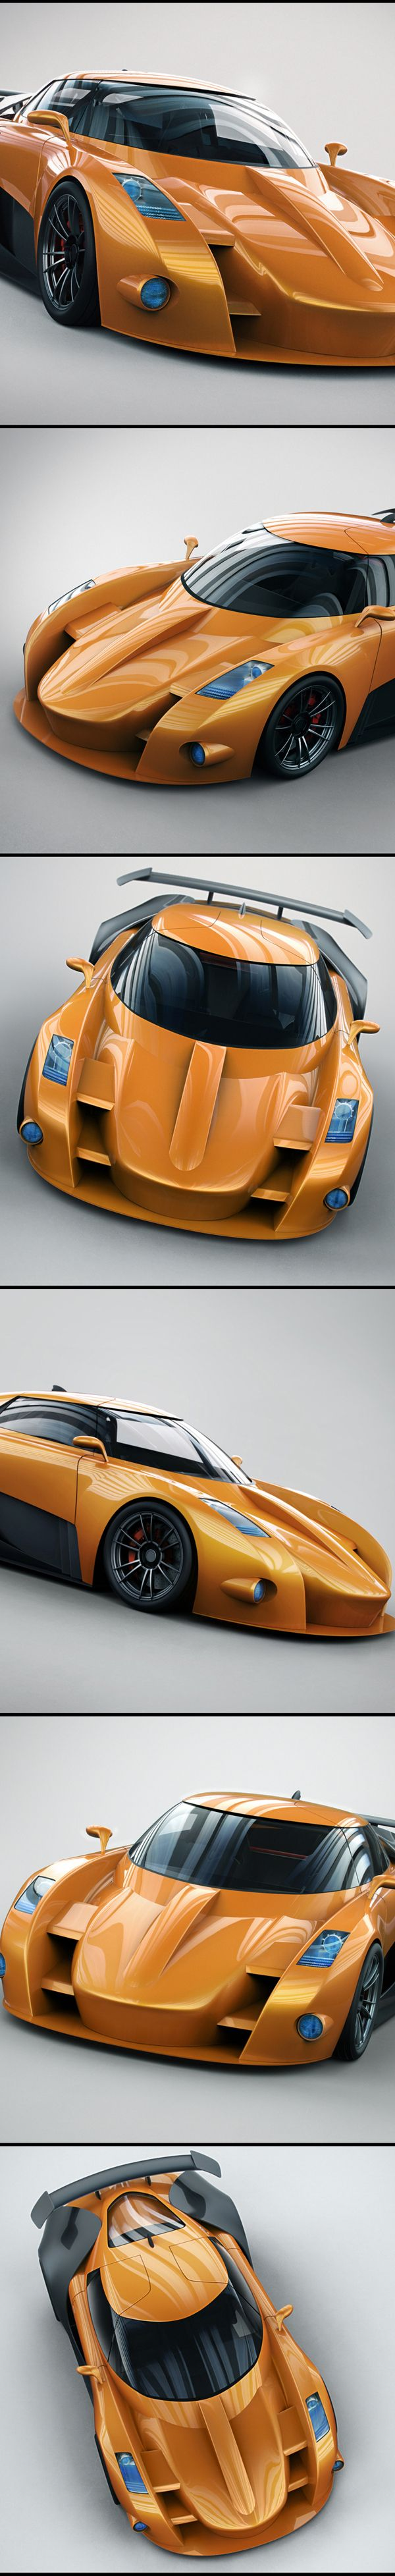 Concept Car Digital Illustration - Awesome Designs!